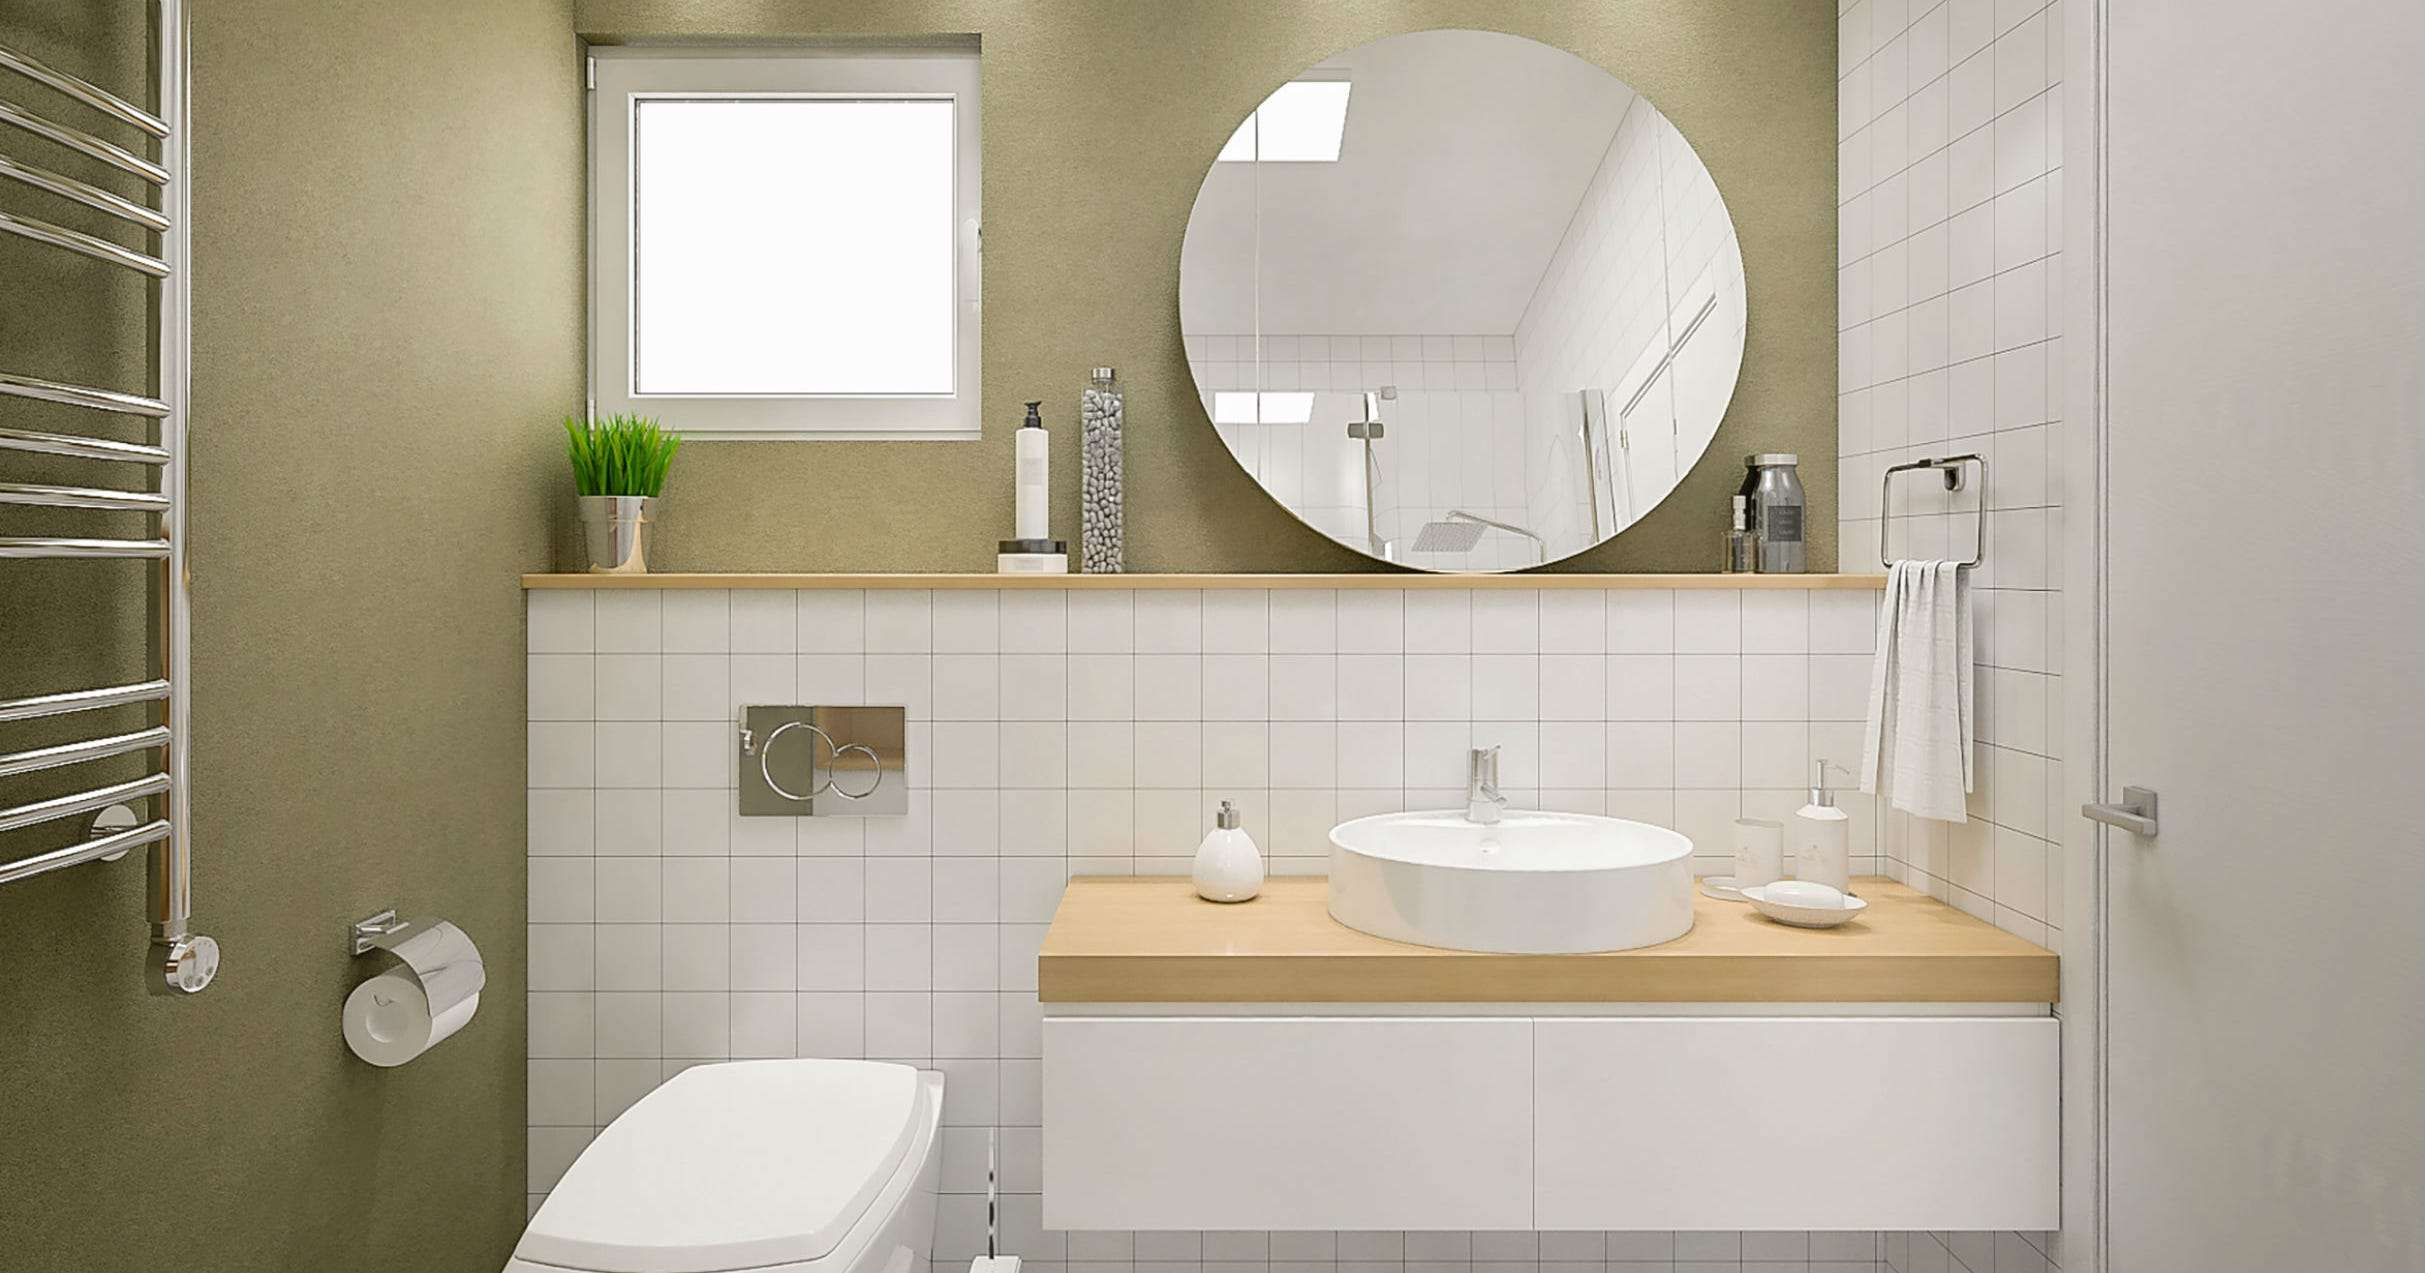 Small Bathroom Ideas From Pinterest